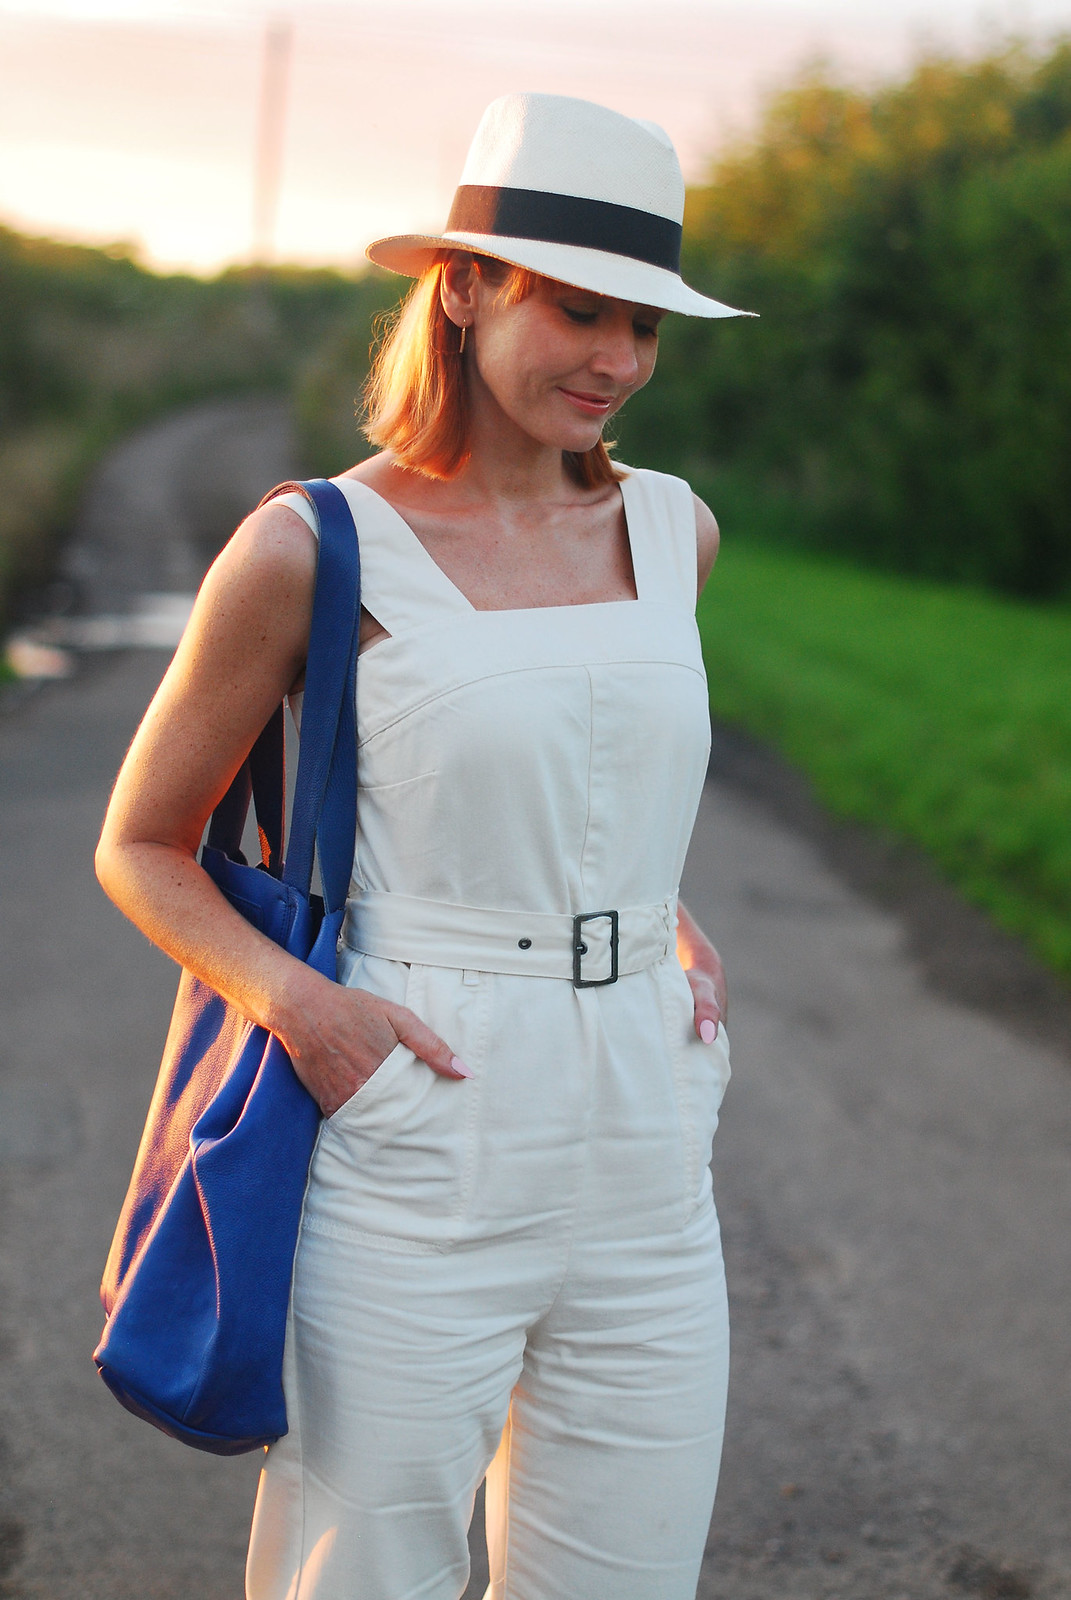 Sleeveless summer overalls: Red, white and blue outfit - red wedge espadrilles, white dungarees and Panama hat, blue slouchy bag | Not Dressed As Lamb